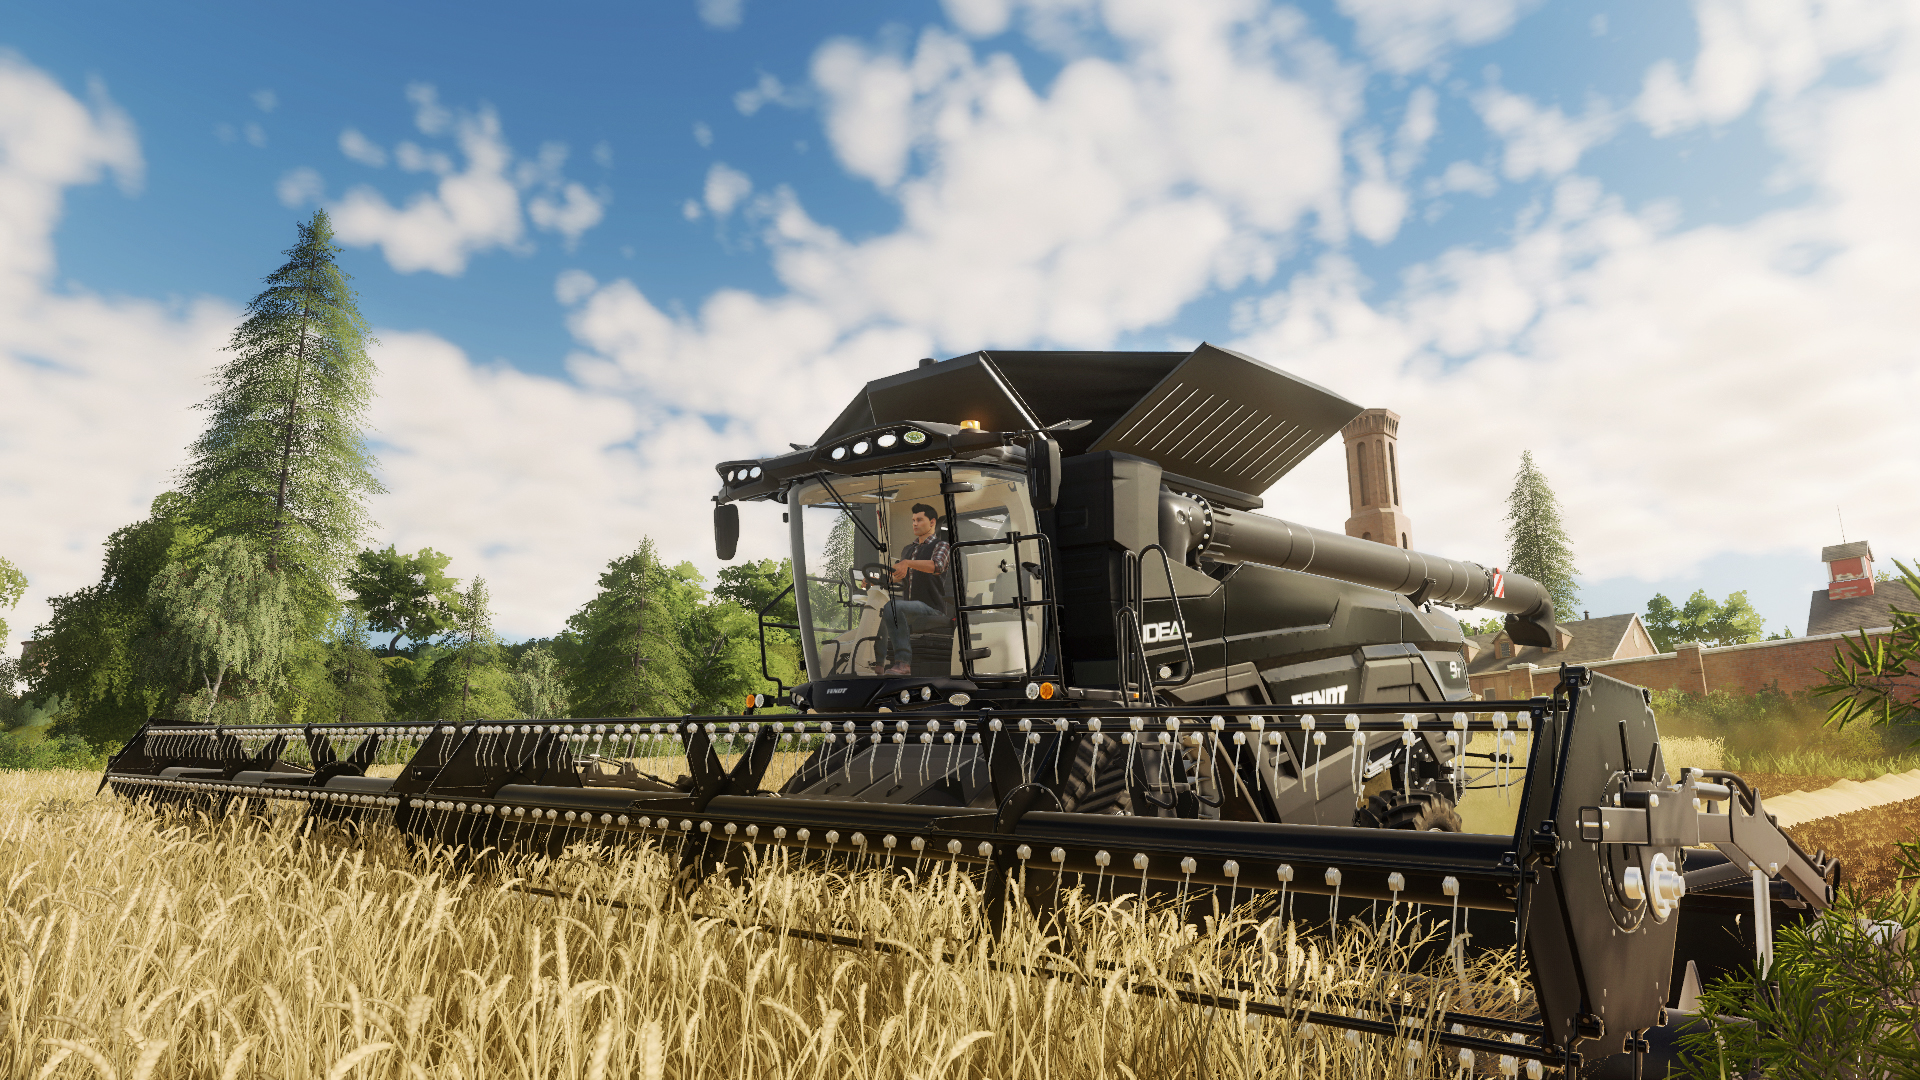 Competitive Virtual Farming Is Getting Its Own Esports League